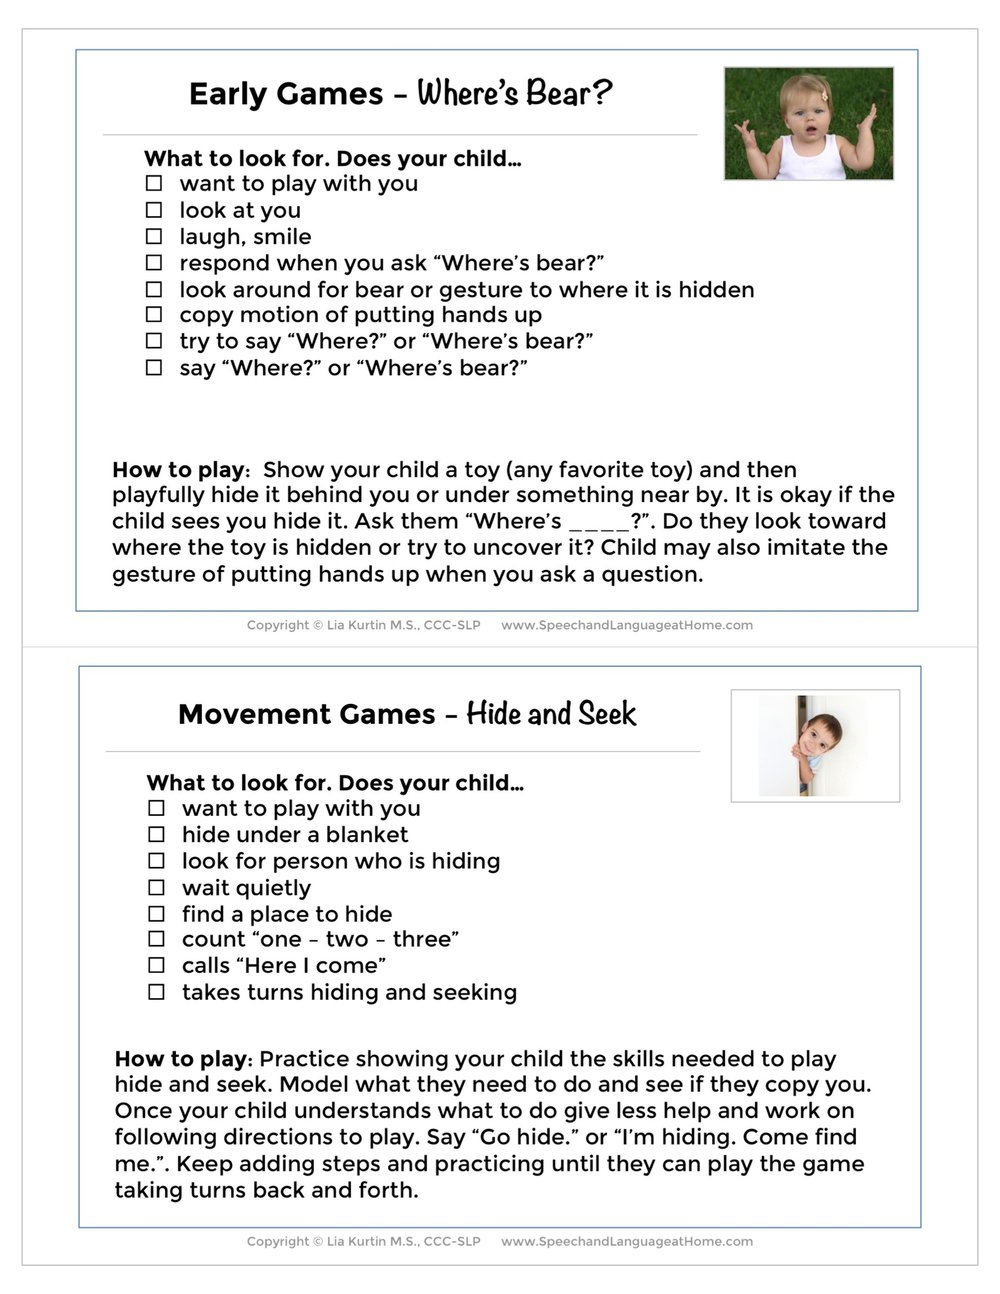 March Early and Movement Games